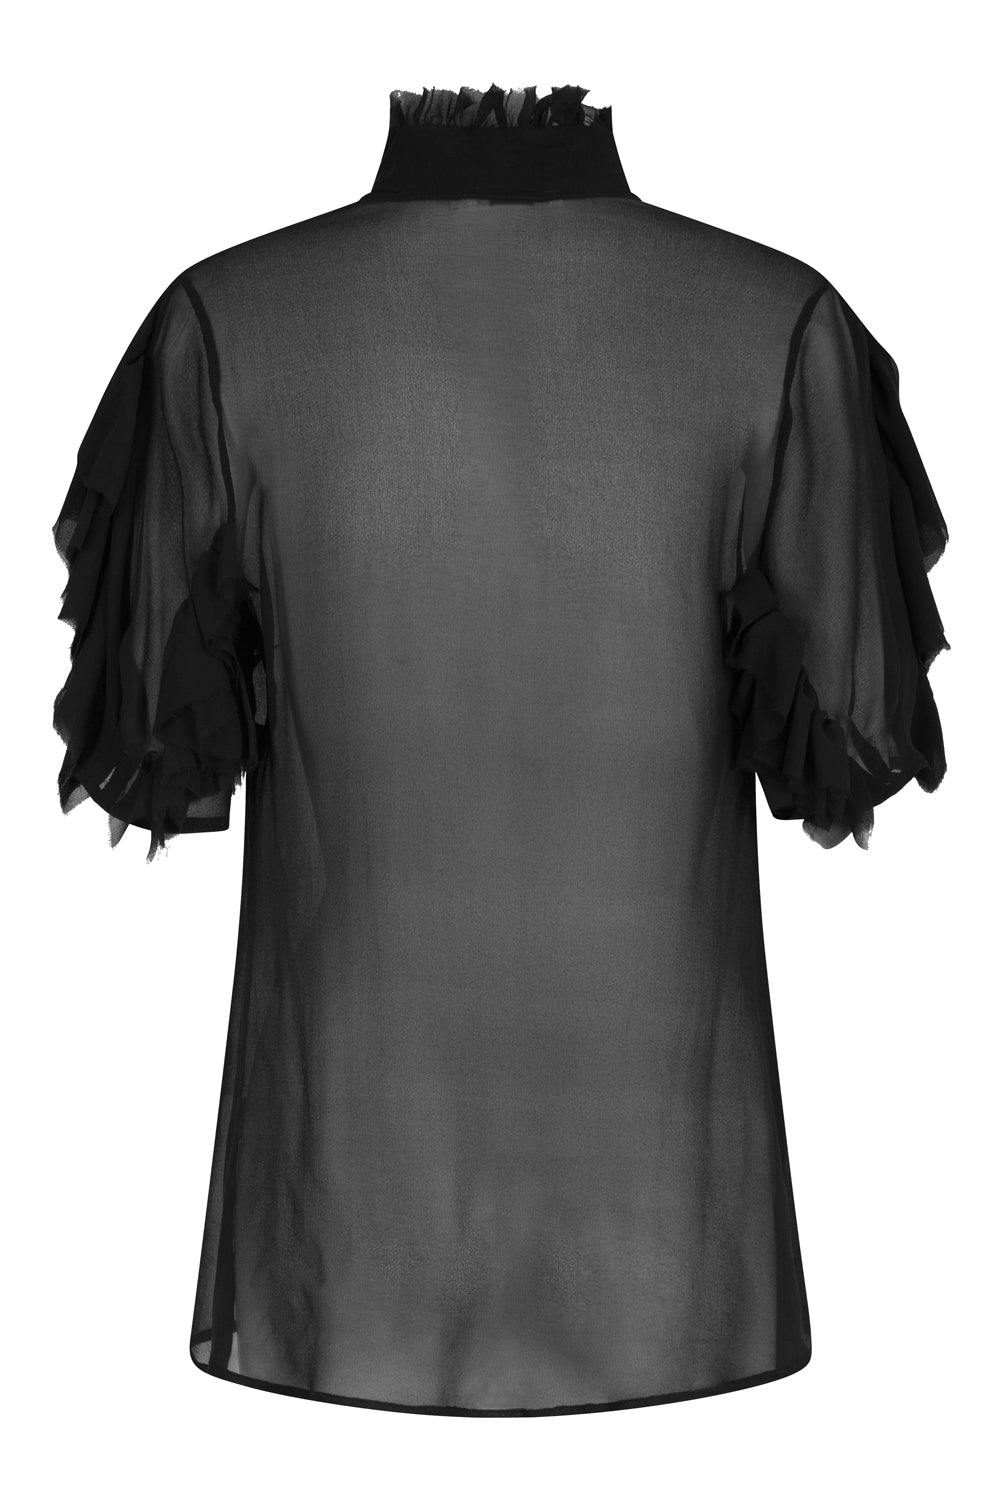 nevenka silk georgette 'black widow' blouse